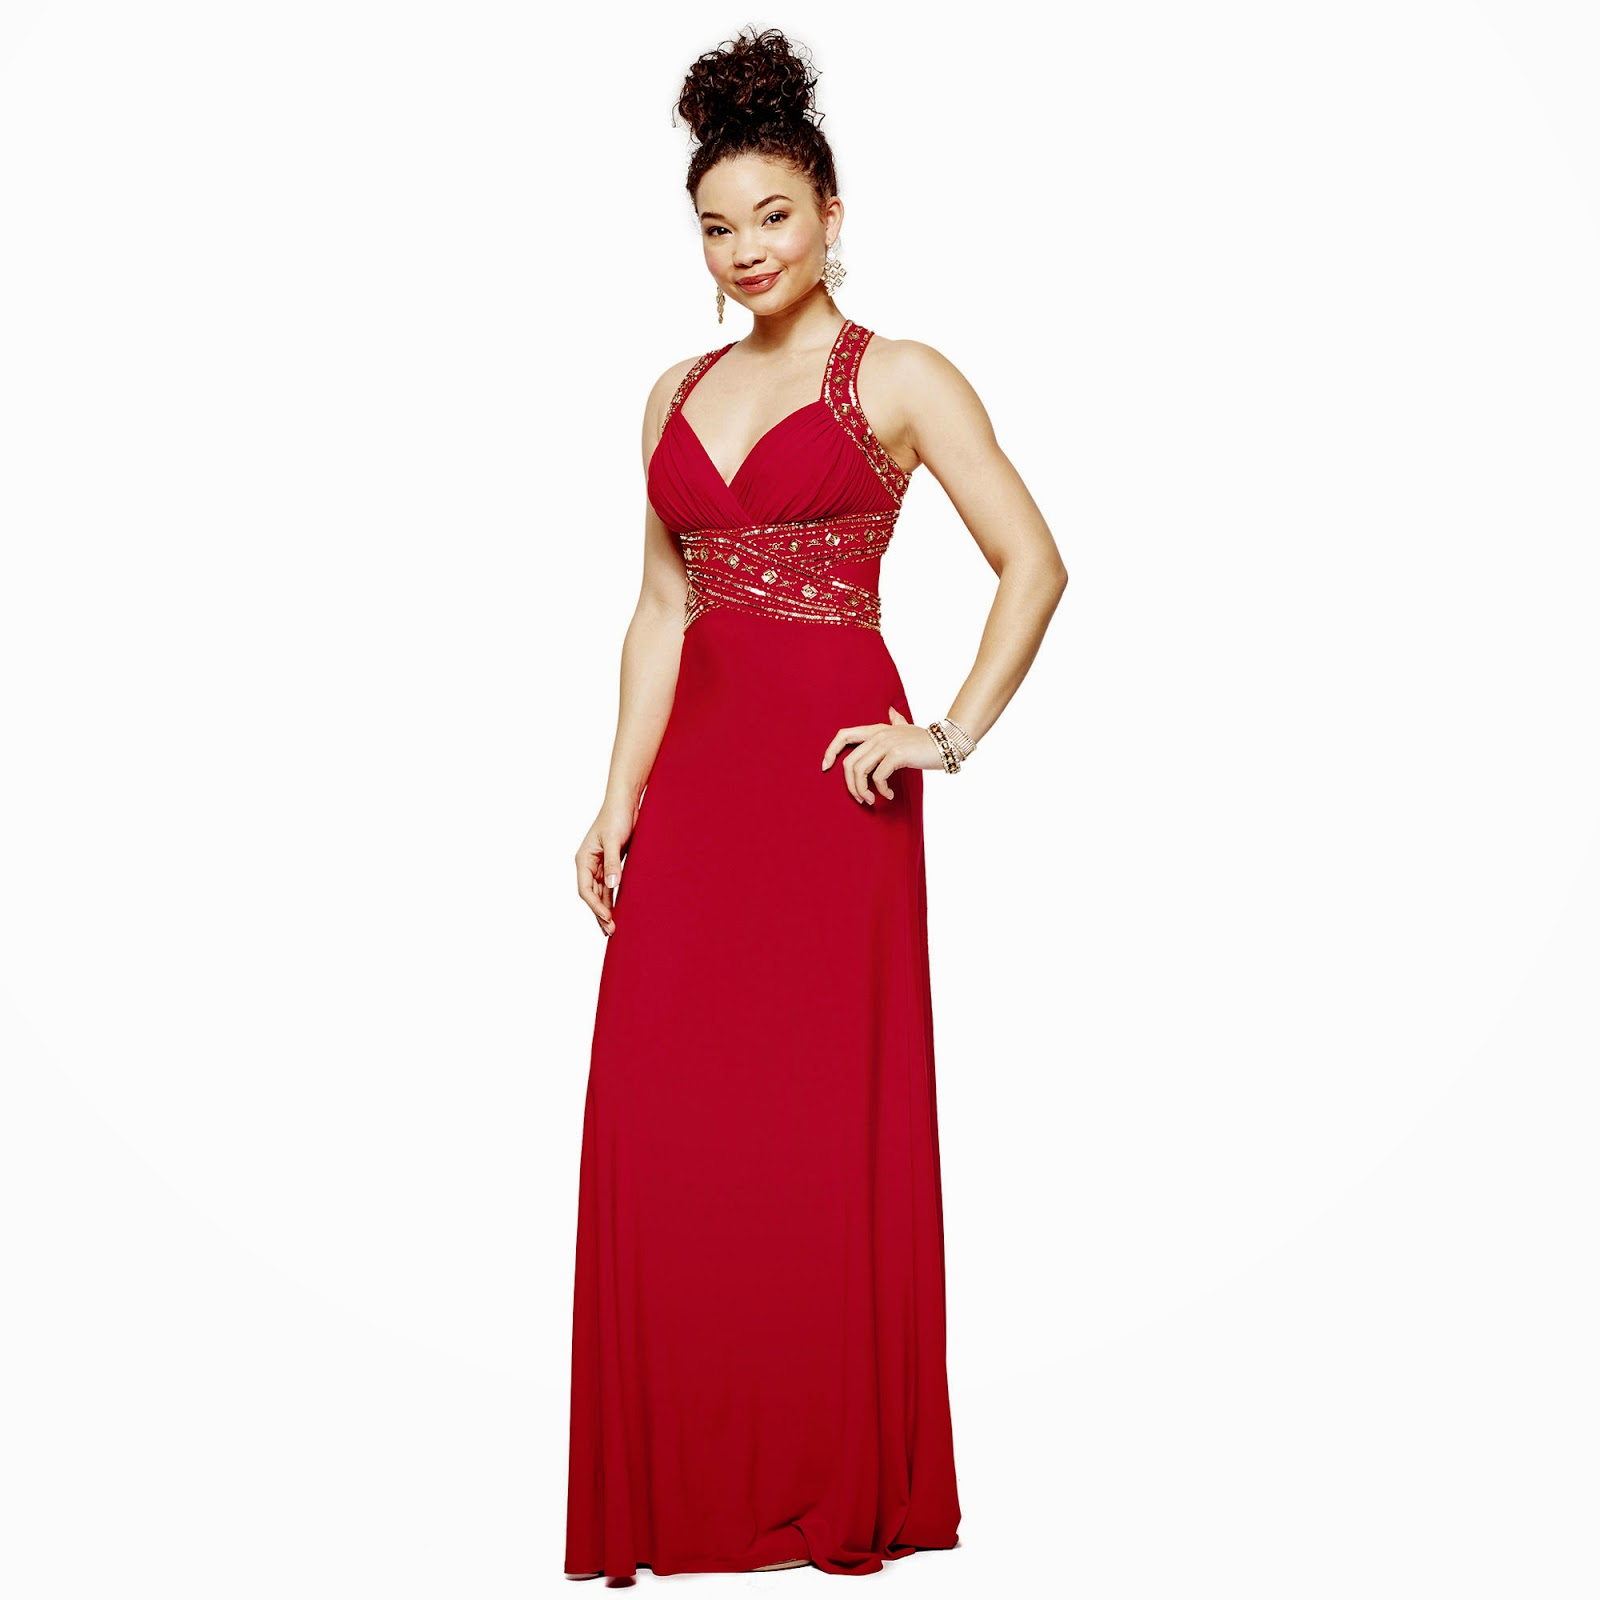 jcpenney homecoming dress jcpenney homecoming dress